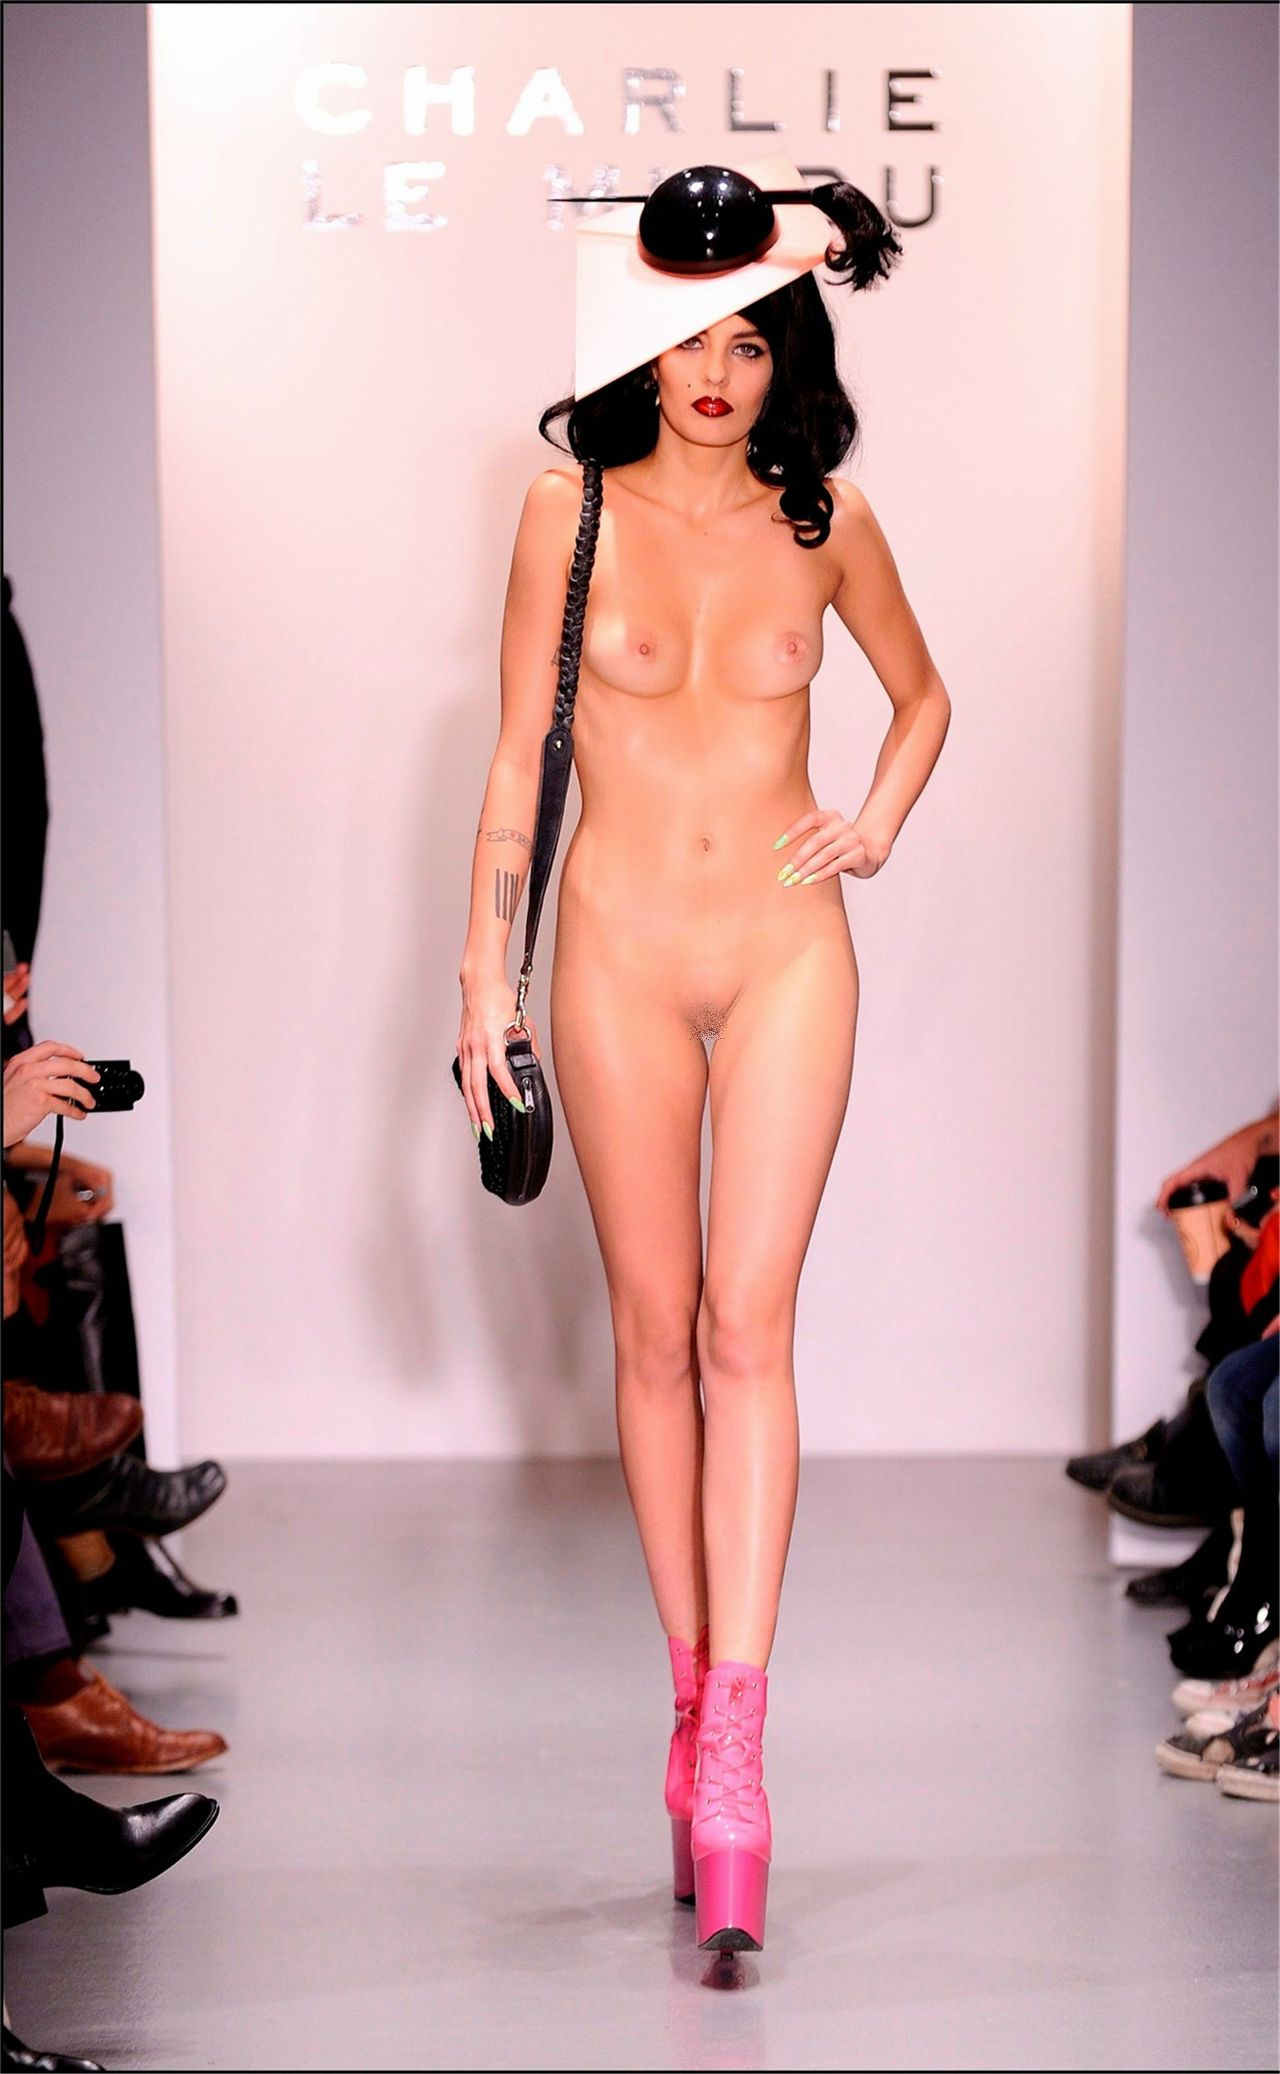 Delightful Nude runway models pussies that can